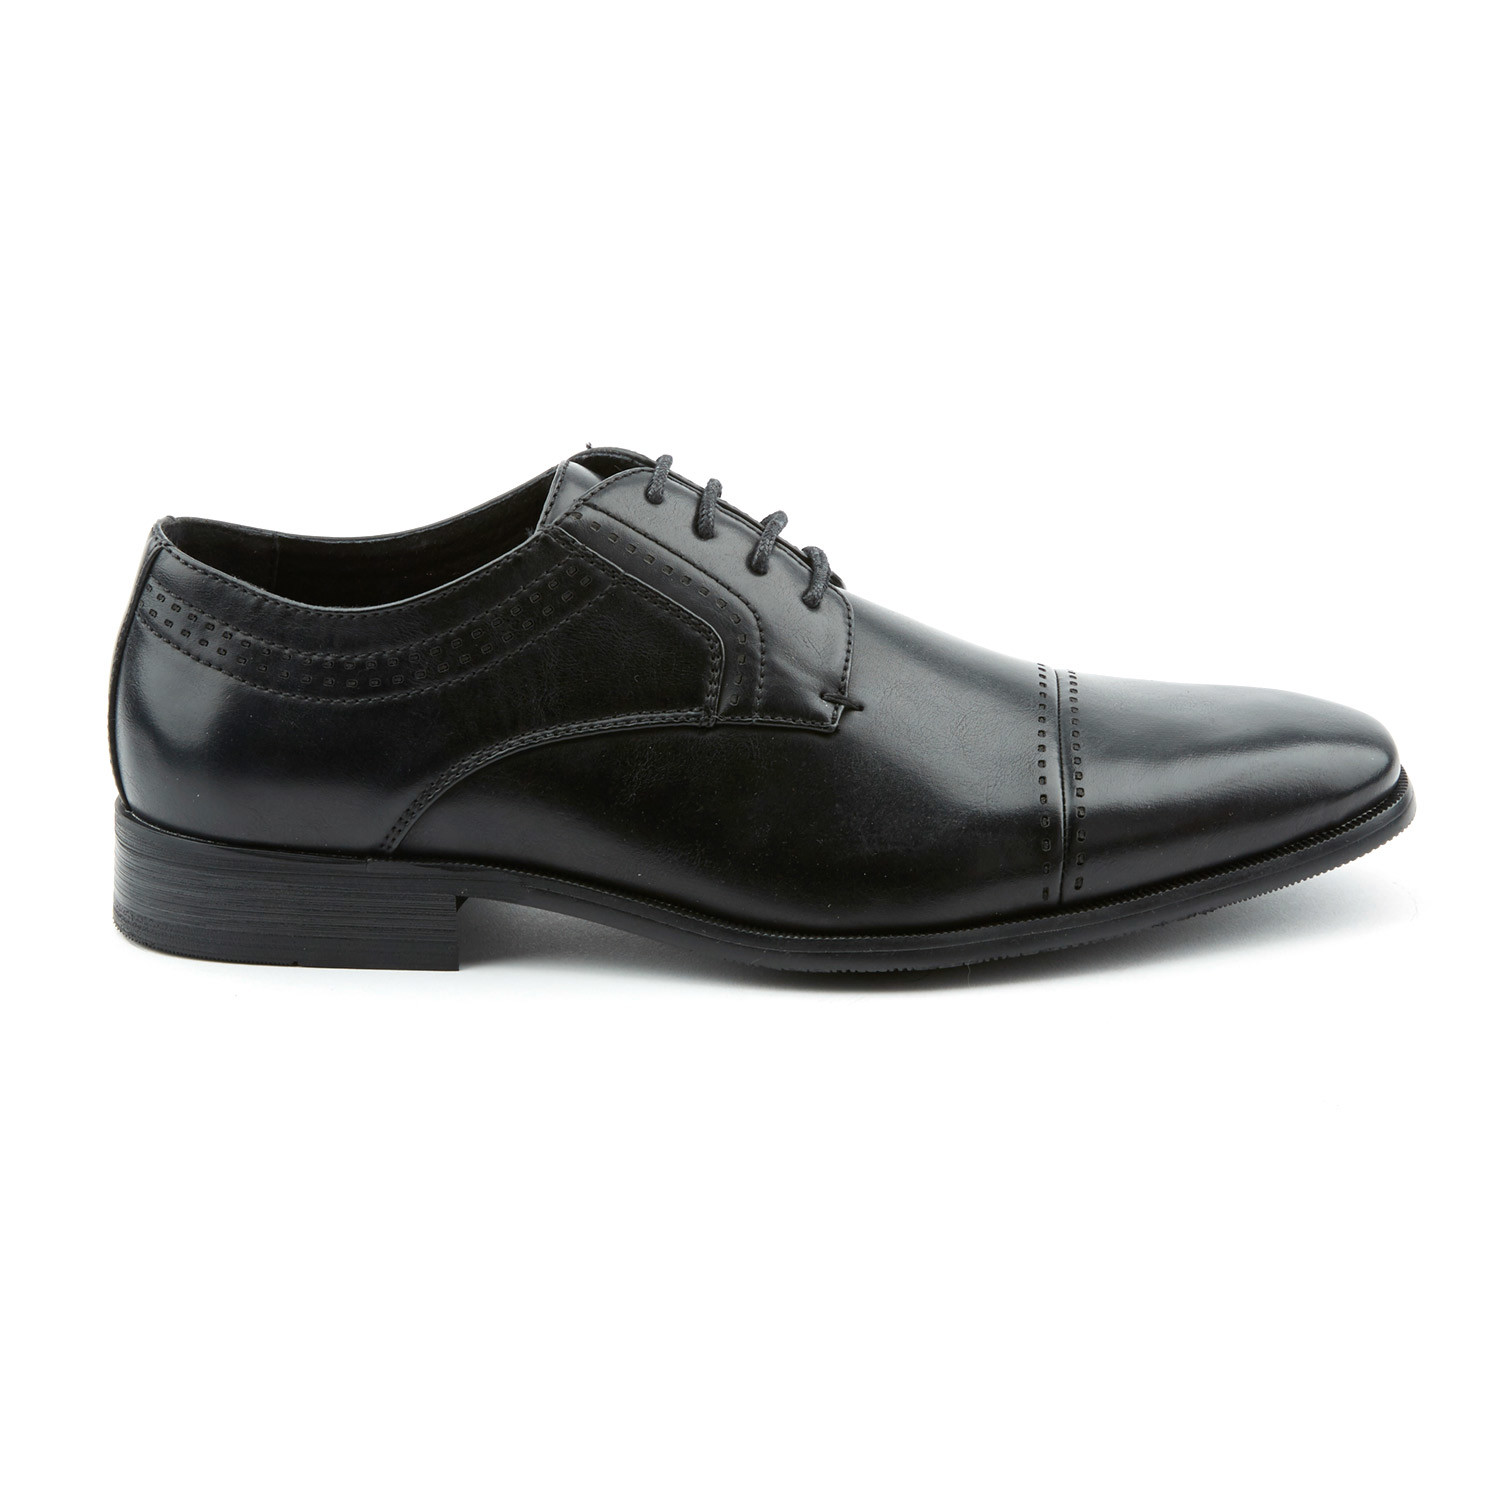 Oxford Black Slip Resistant Shoes With Laces